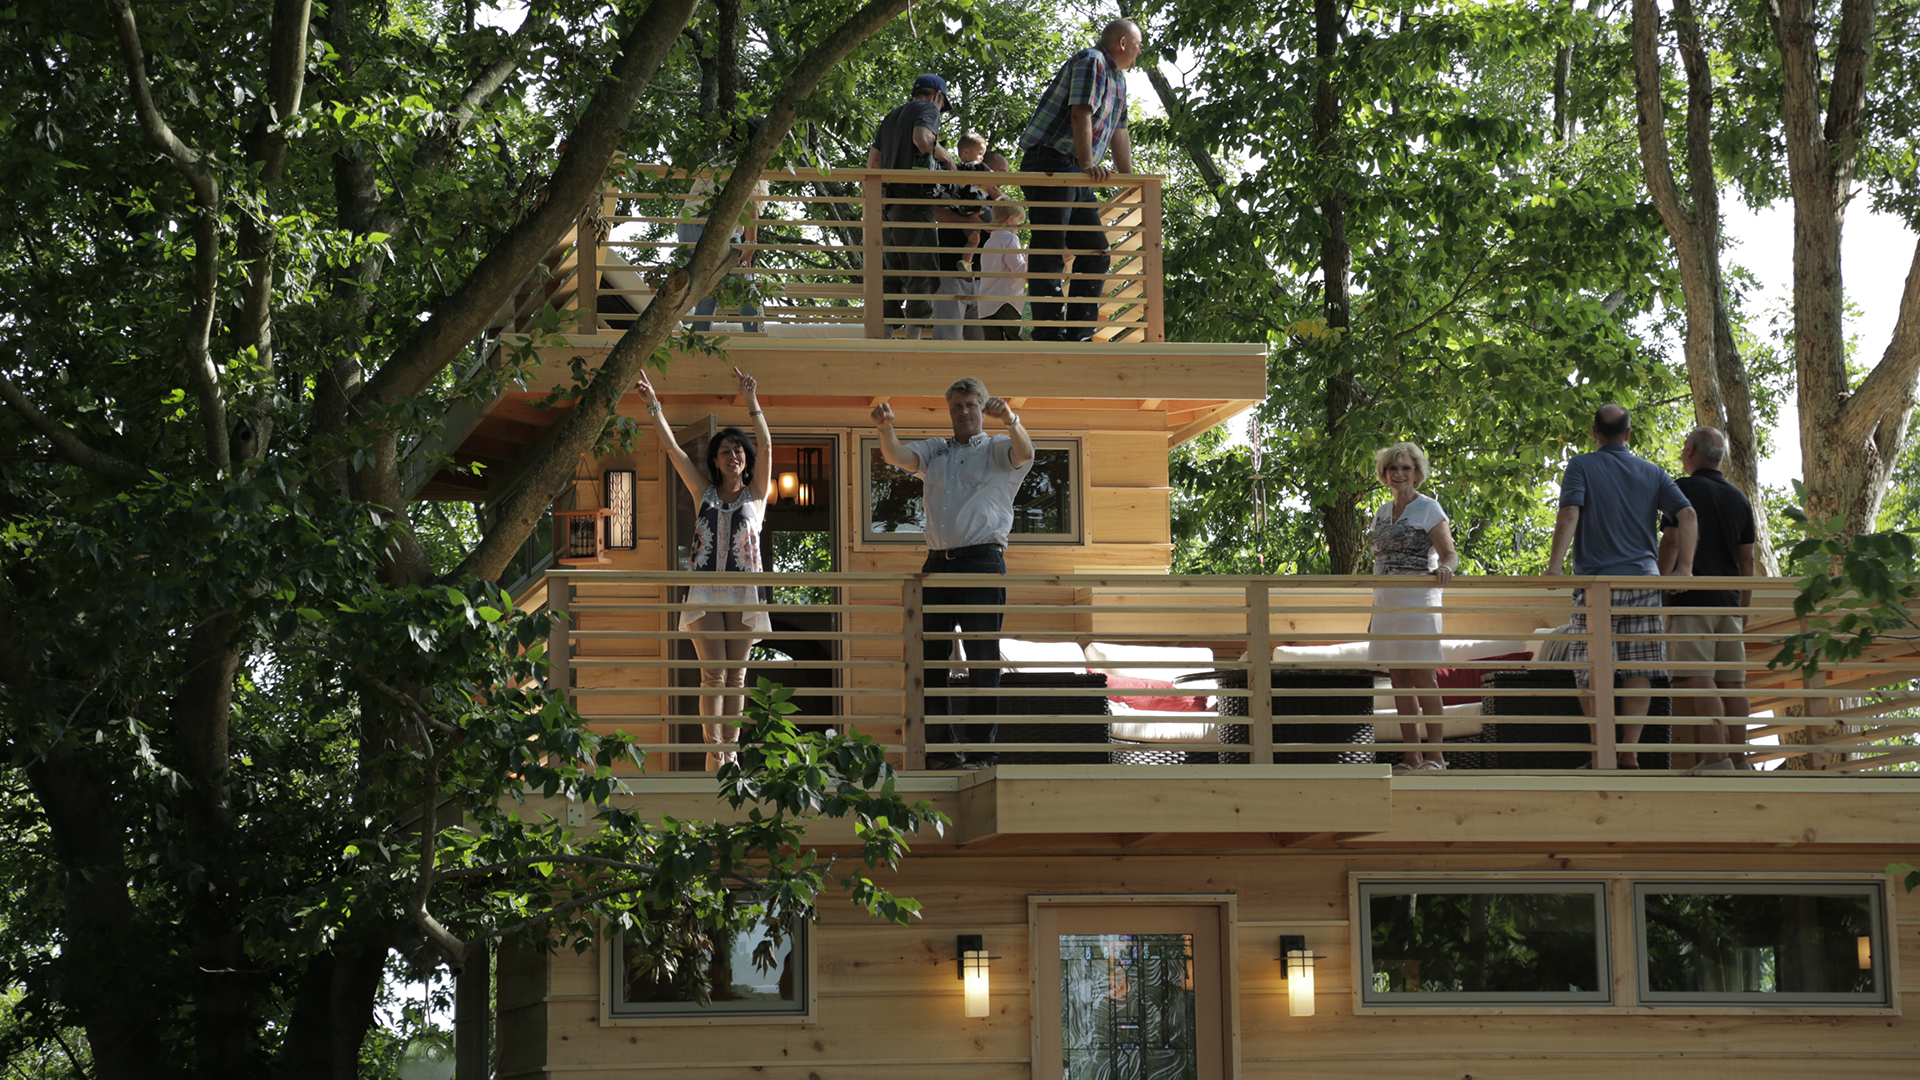 treehouse masters frank lloyd wright inspired treehouse todaycom - Treehouse Masters Mirrors